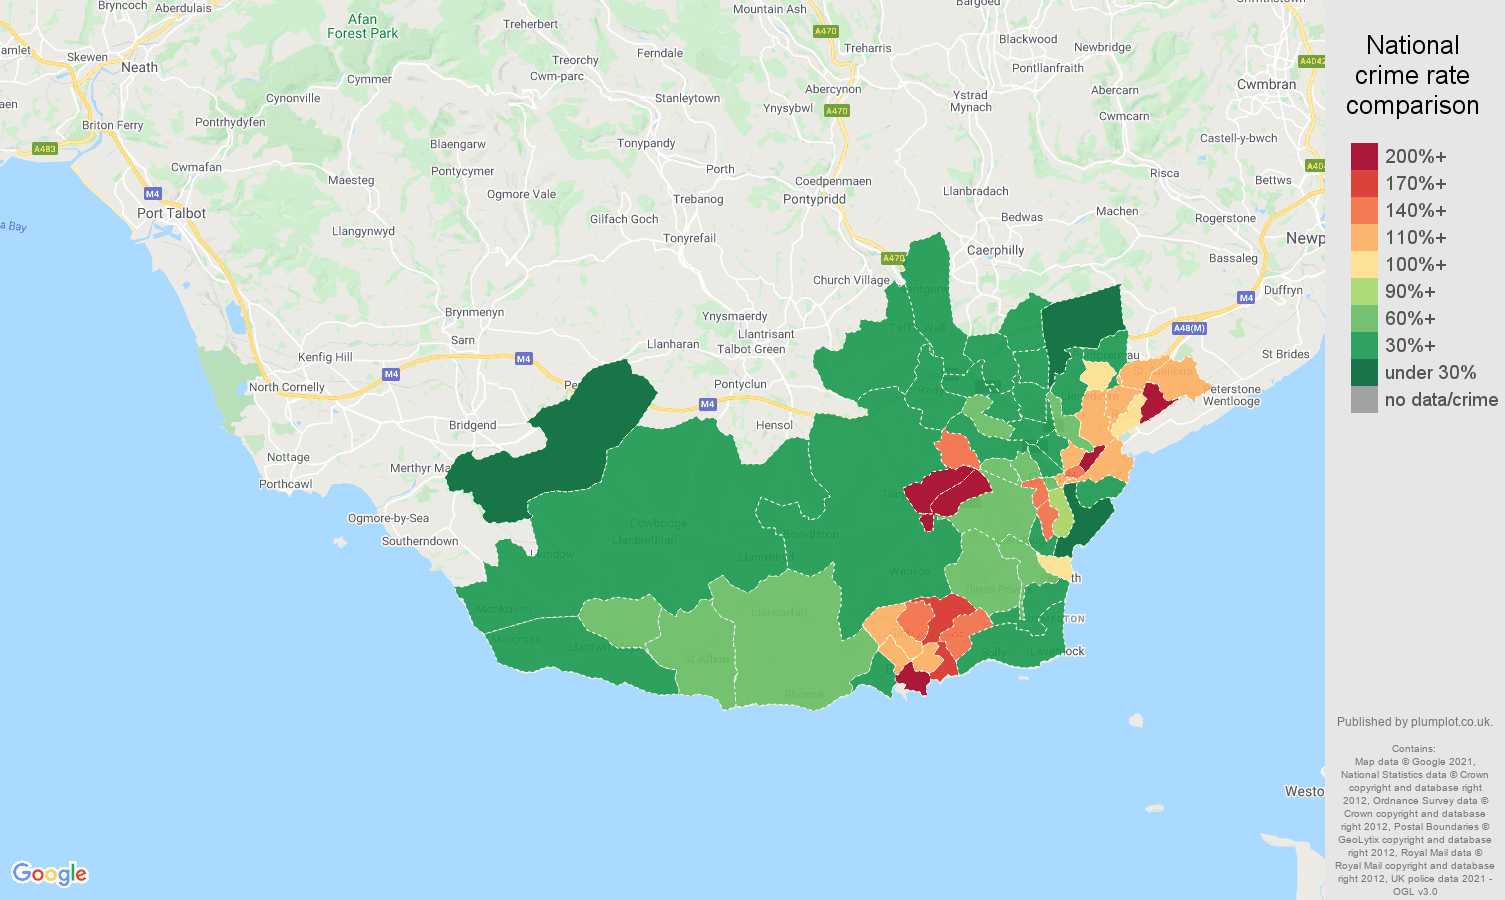 South Glamorgan violent crime rate comparison map